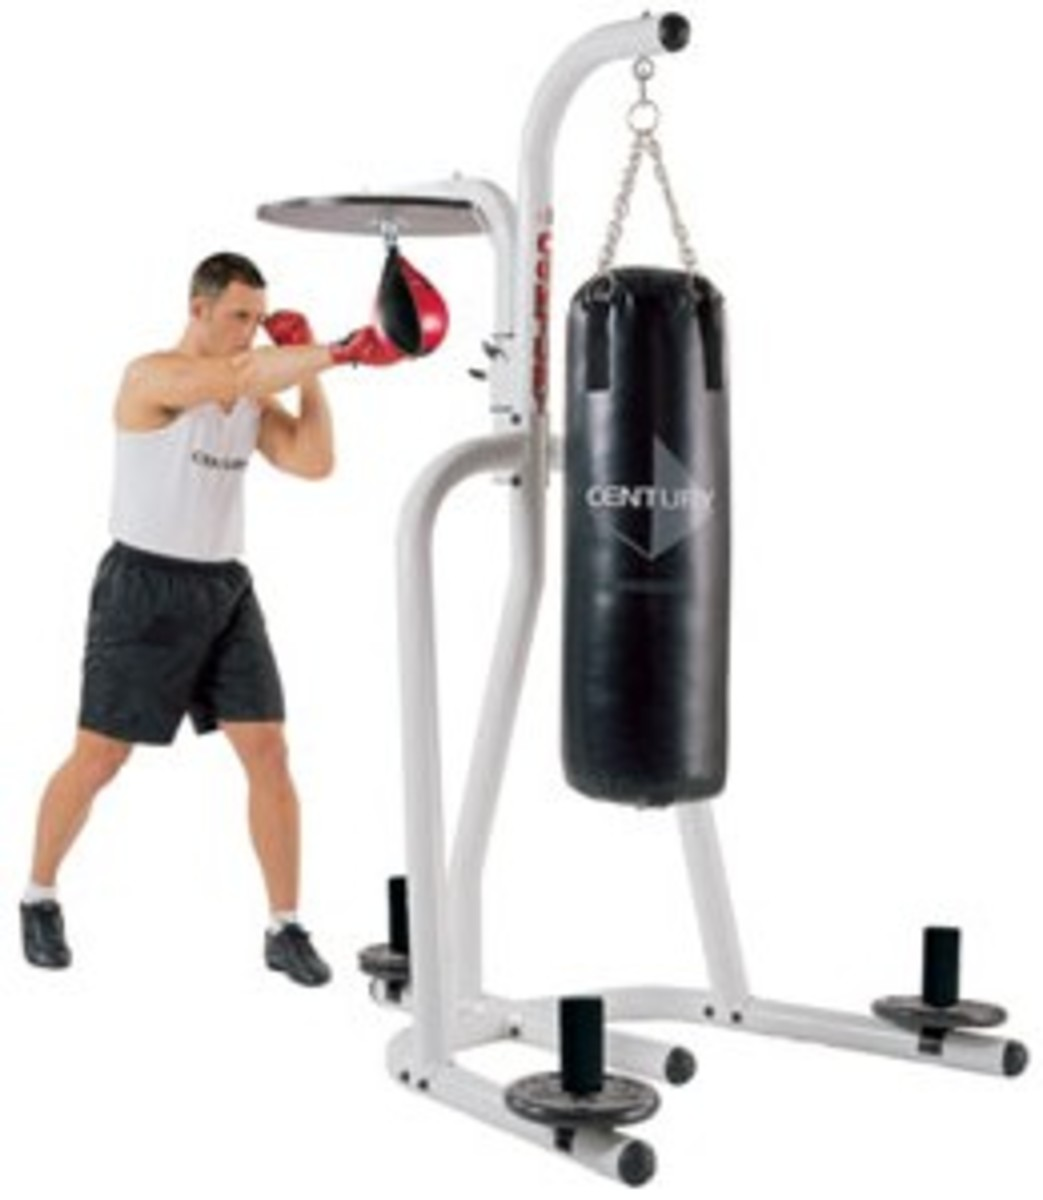 Punching Bag Stands - Home Workout Equipment